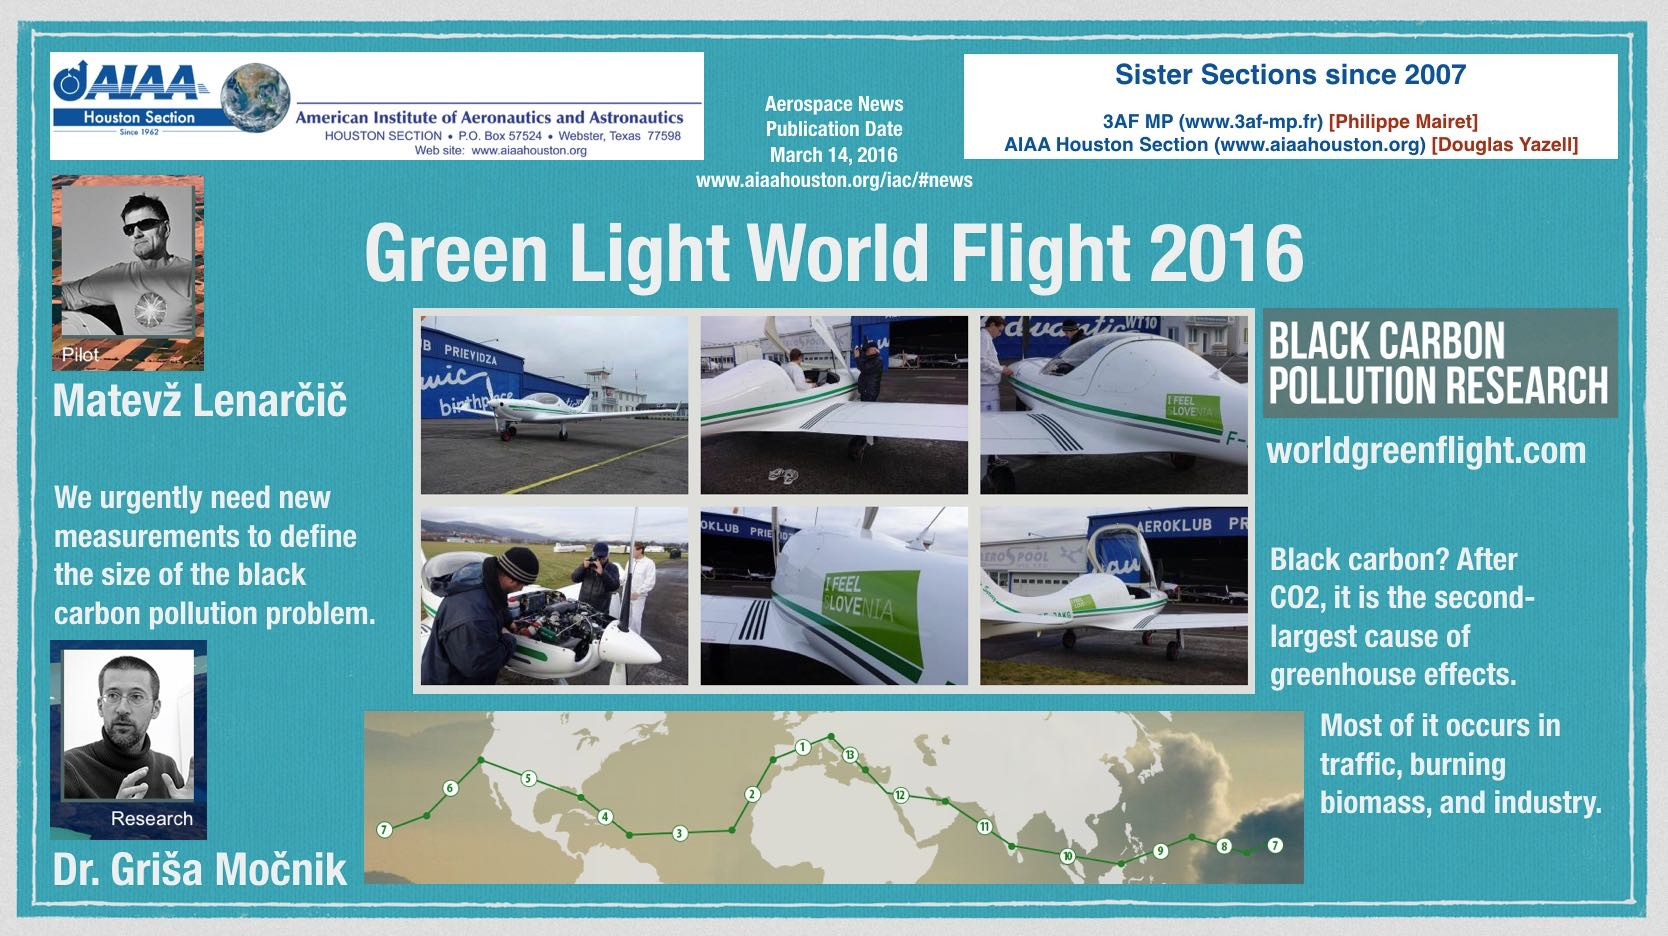 Above: Green Light World Flight 2016. (Click to zoom.)